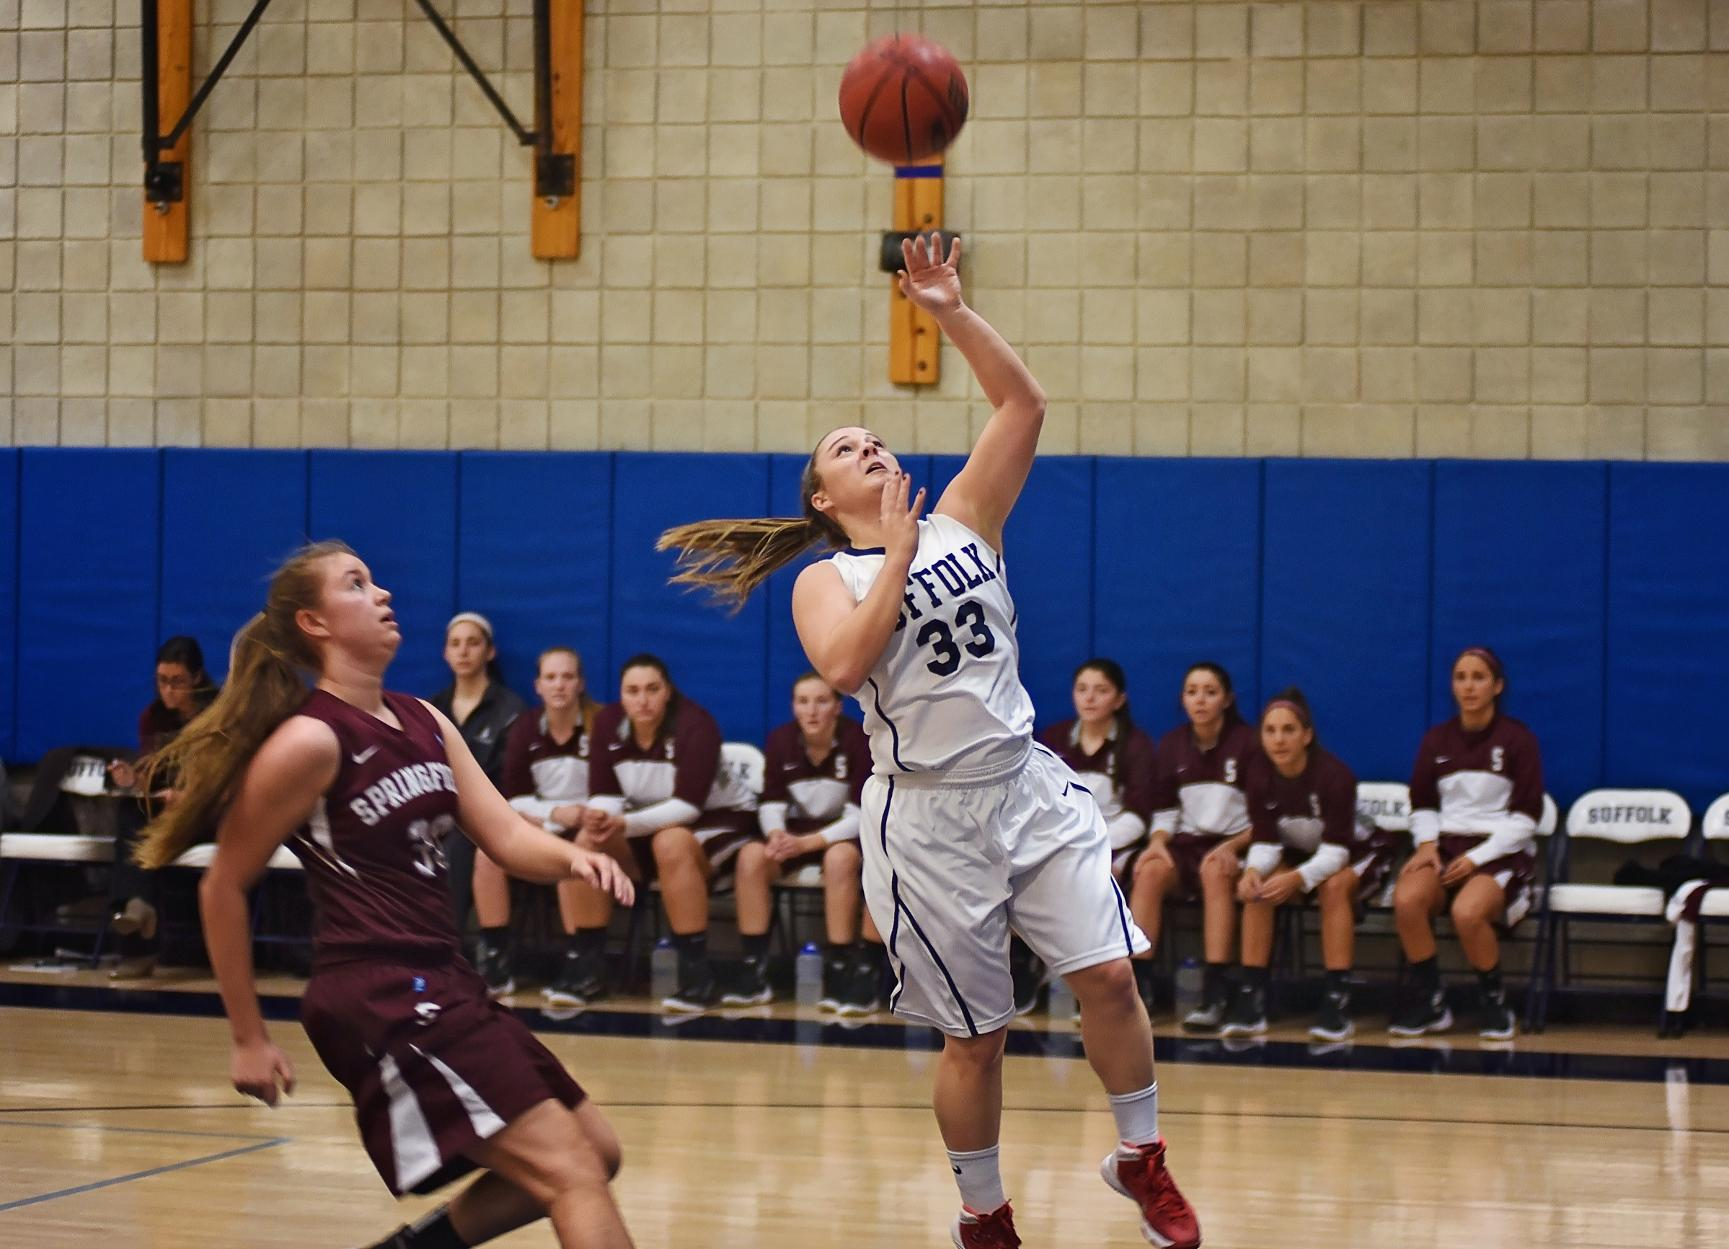 Clark Takes Down Women's Basketball, 53-44, in 2016 Finale